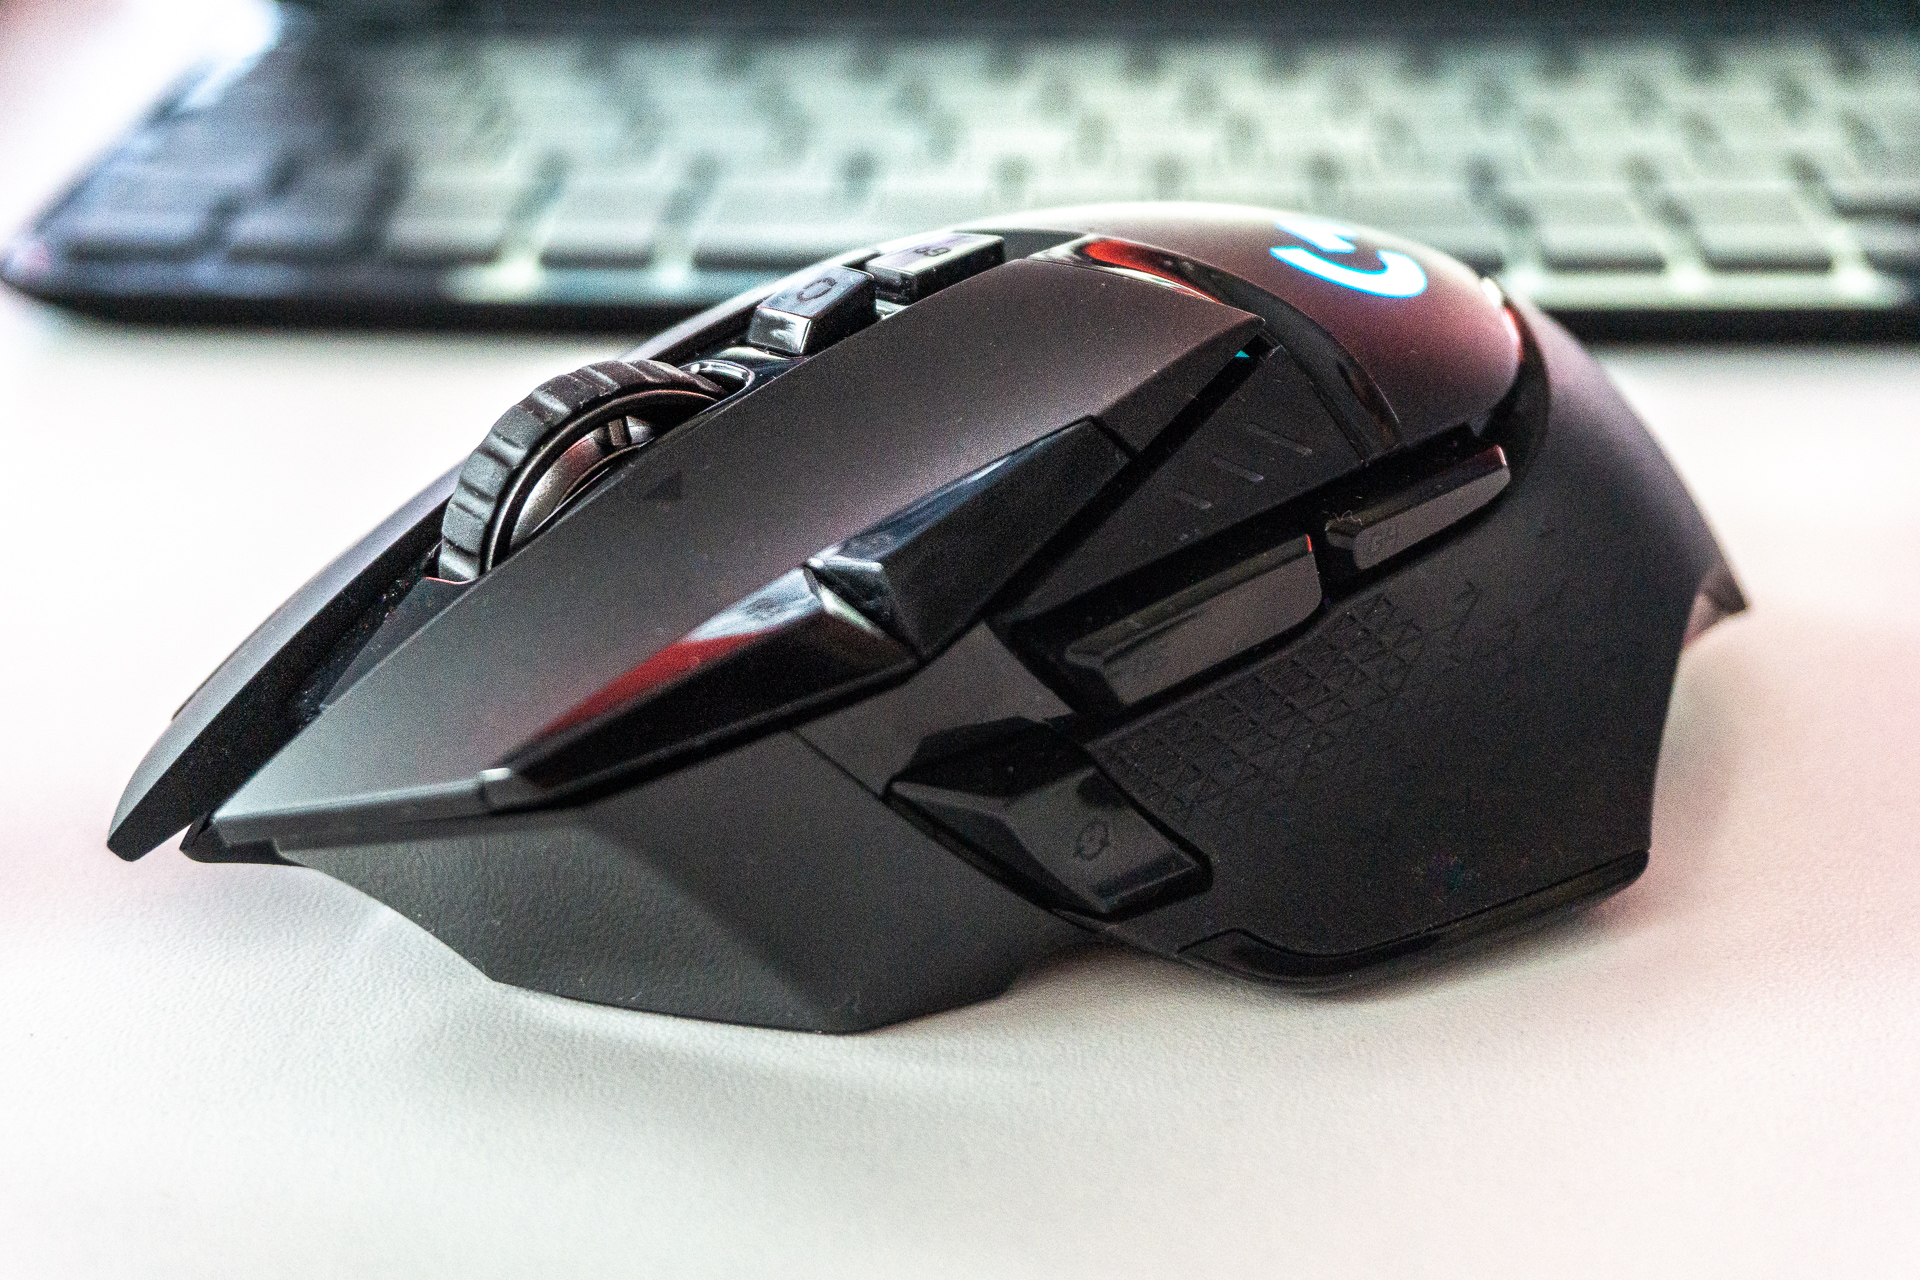 Logitech G502 Lightspeed is the best wireless mouse for players in our  galaxy - a review